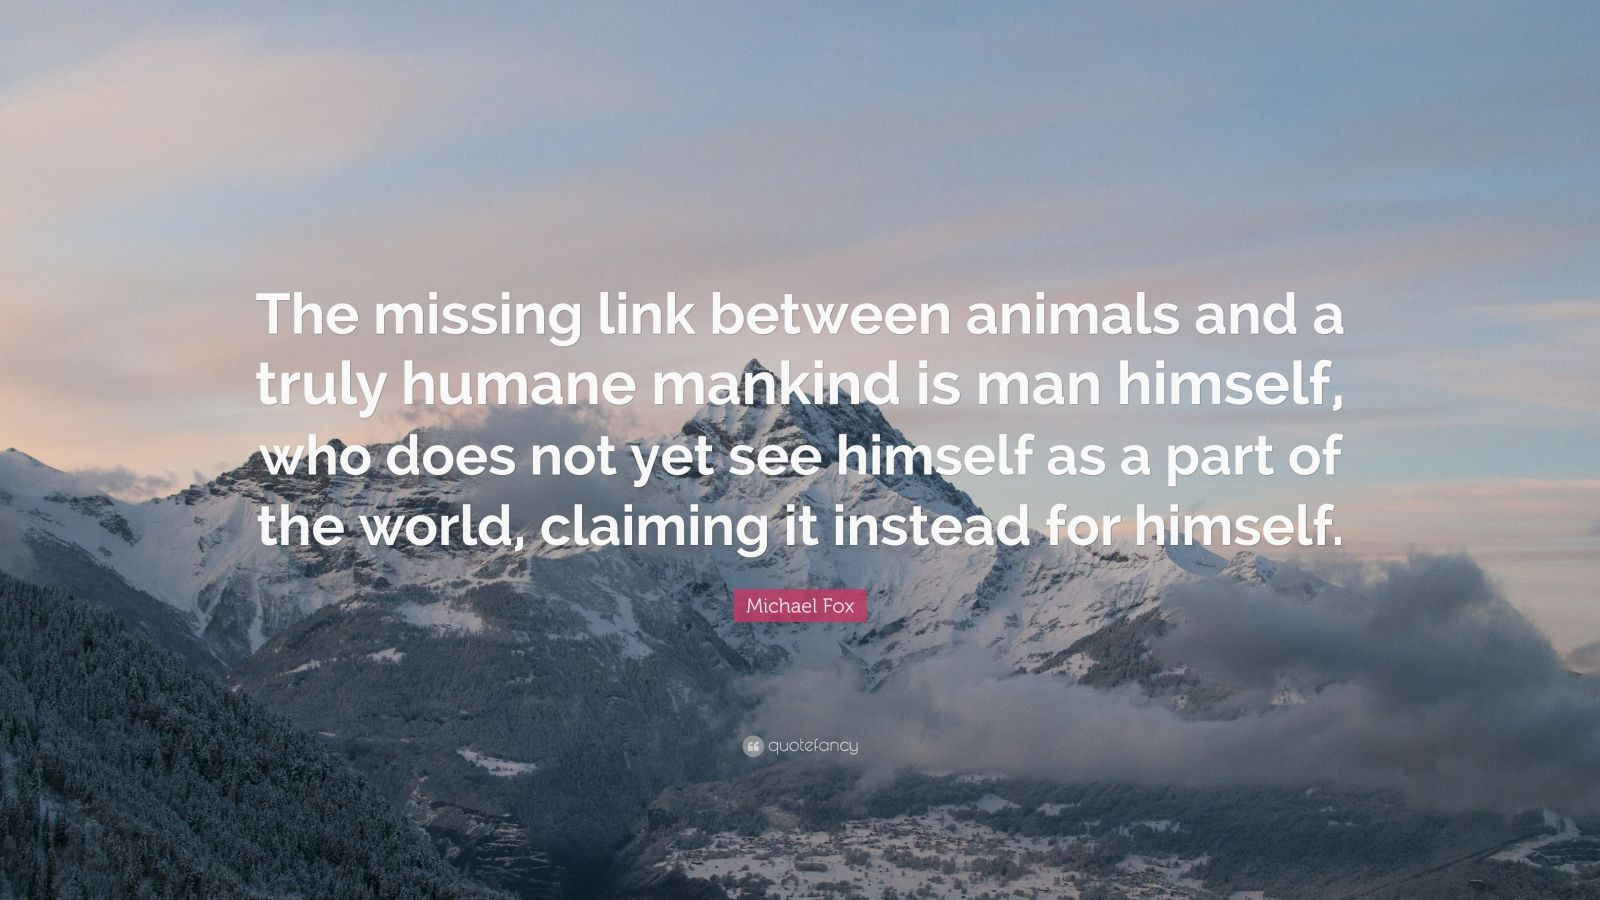 """Michael Fox Quote: """"The missing link between animals and a truly humane mankind is man himself, who does not yet see himself as a part of the world, claiming it instead for himself."""""""